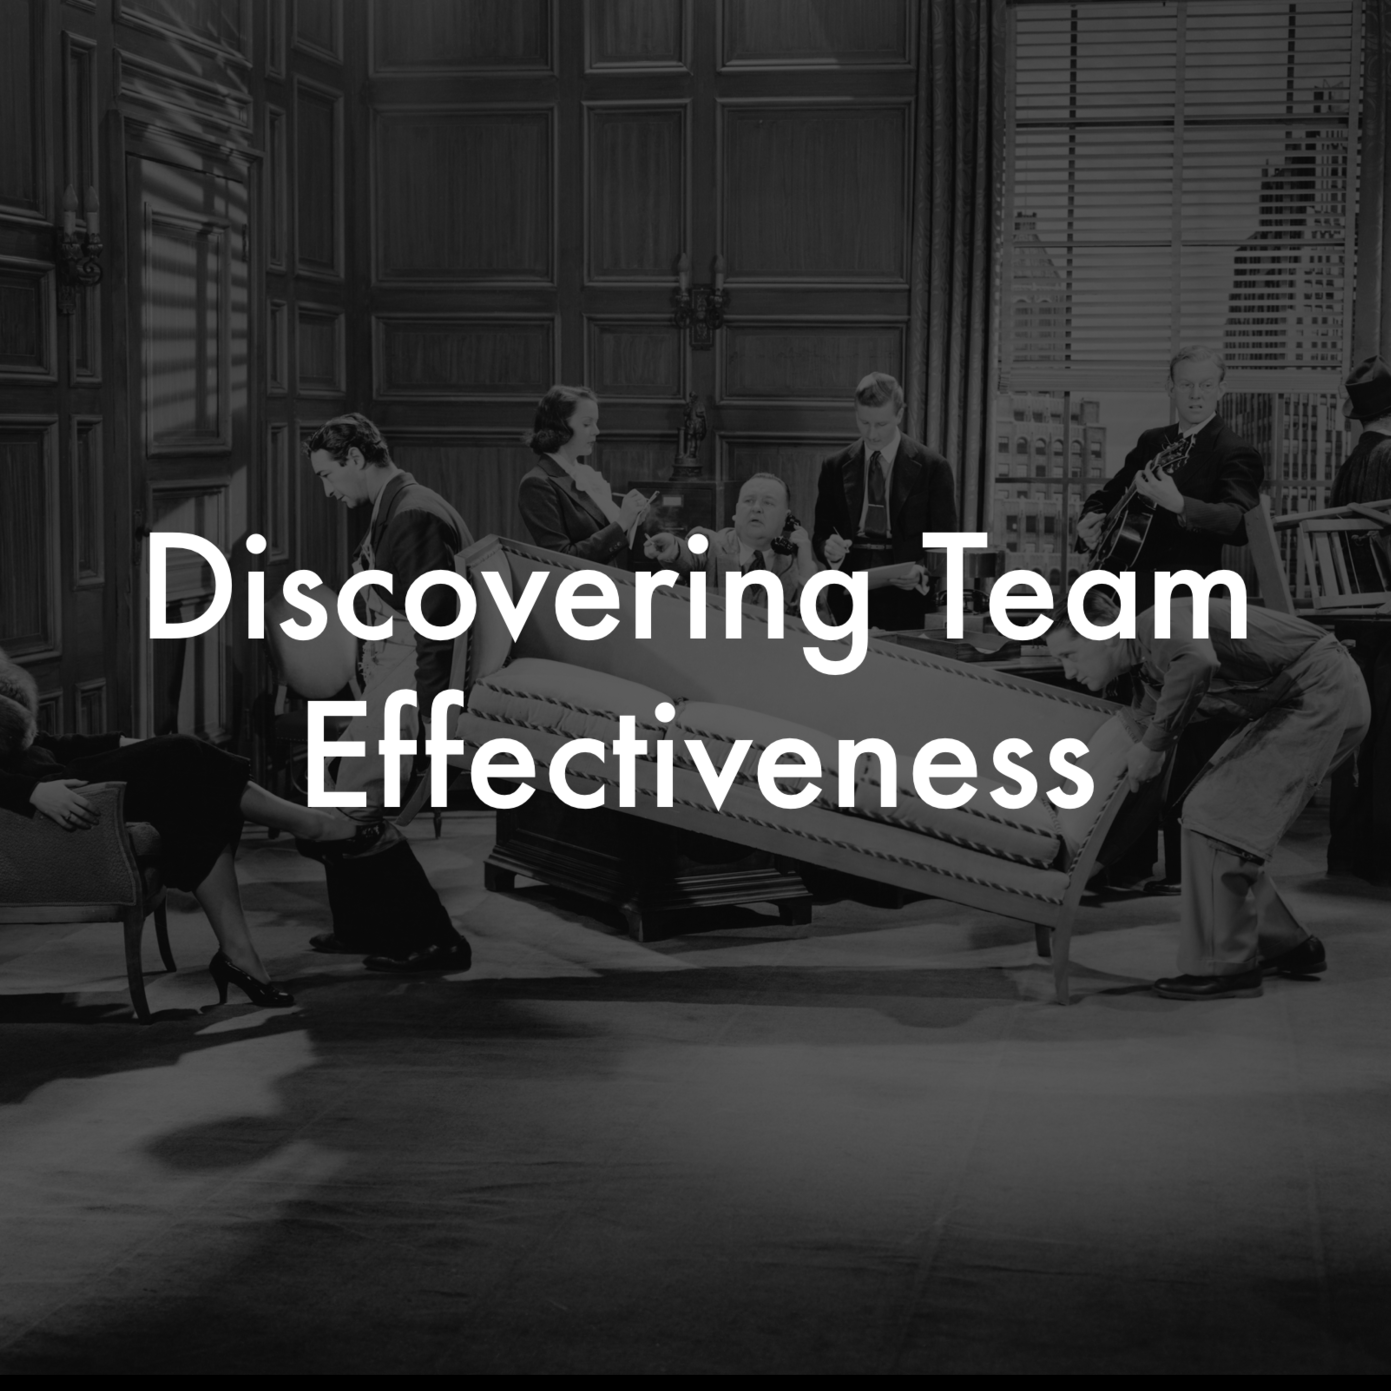 Team effectiveness, team working, enhancing teams, team development, culture.